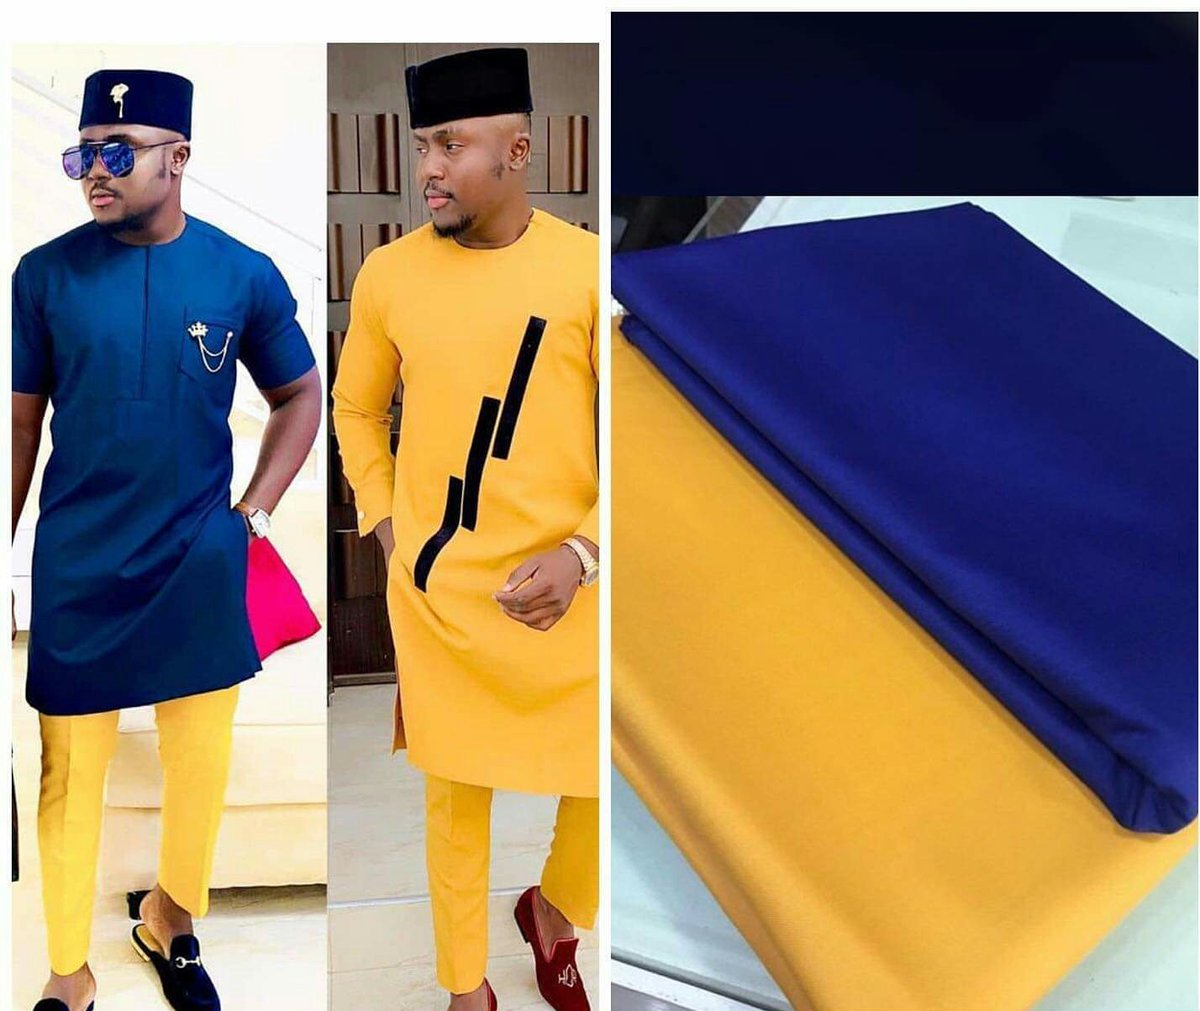 Get stylish and stand out in our quality plain and checkers cashmere fabrics at affordable prices. Like a king, Be a star #1609FABRIQUE  #Getstylish #Cashmerefabric #NigeriaNative #fashionformen pic.twitter.com/kCNfHgZv0y